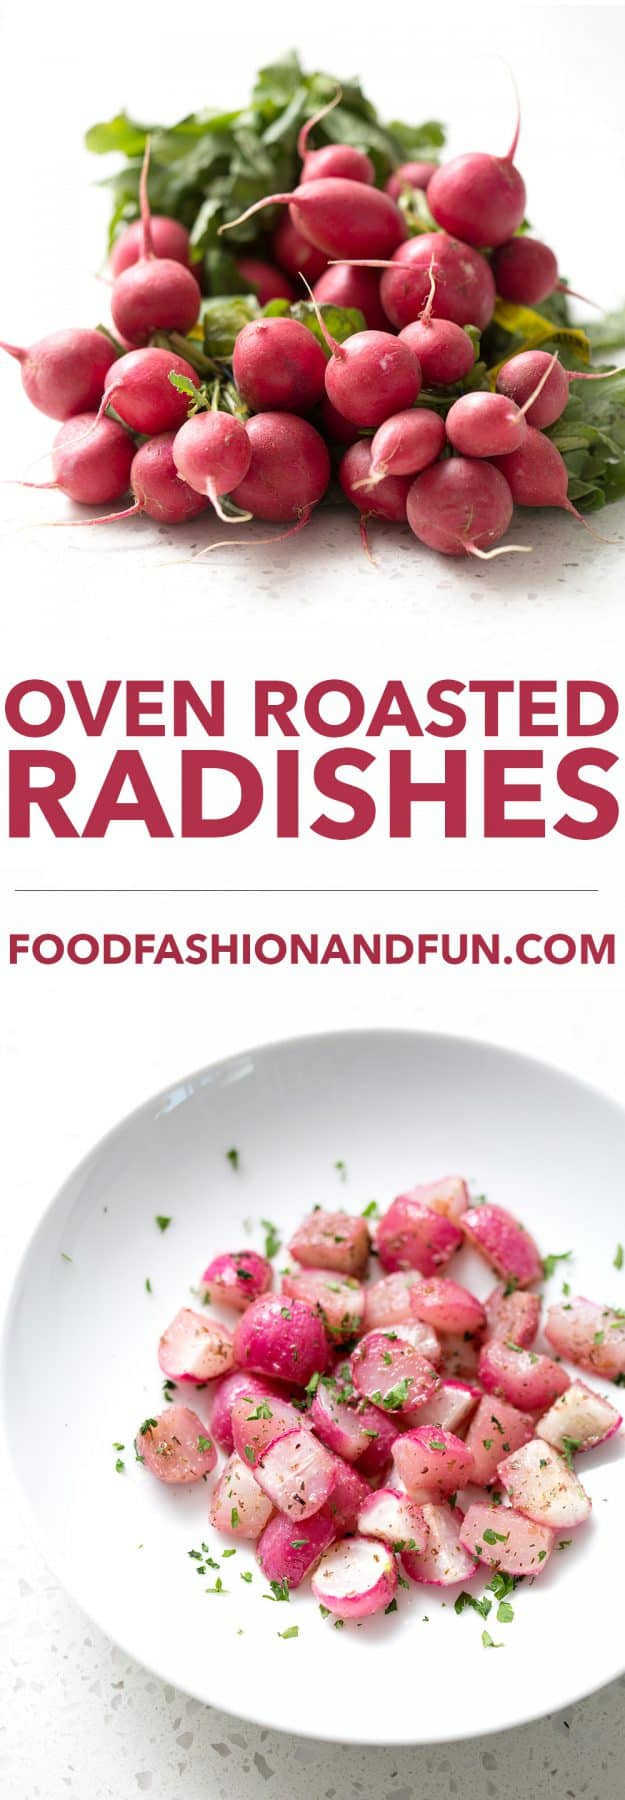 This Oven Roasted Radishes recipe takes advantage of the fresh produce from your garden. After roasting the radishes, they have an almost sweet taste that's completely different from the sharper raw flavor. This recipe is allergy friendly (gluten, dairy, seafood, nut, egg, and soy free) and suits the autoimmune protocol, paleo and vegan diets.